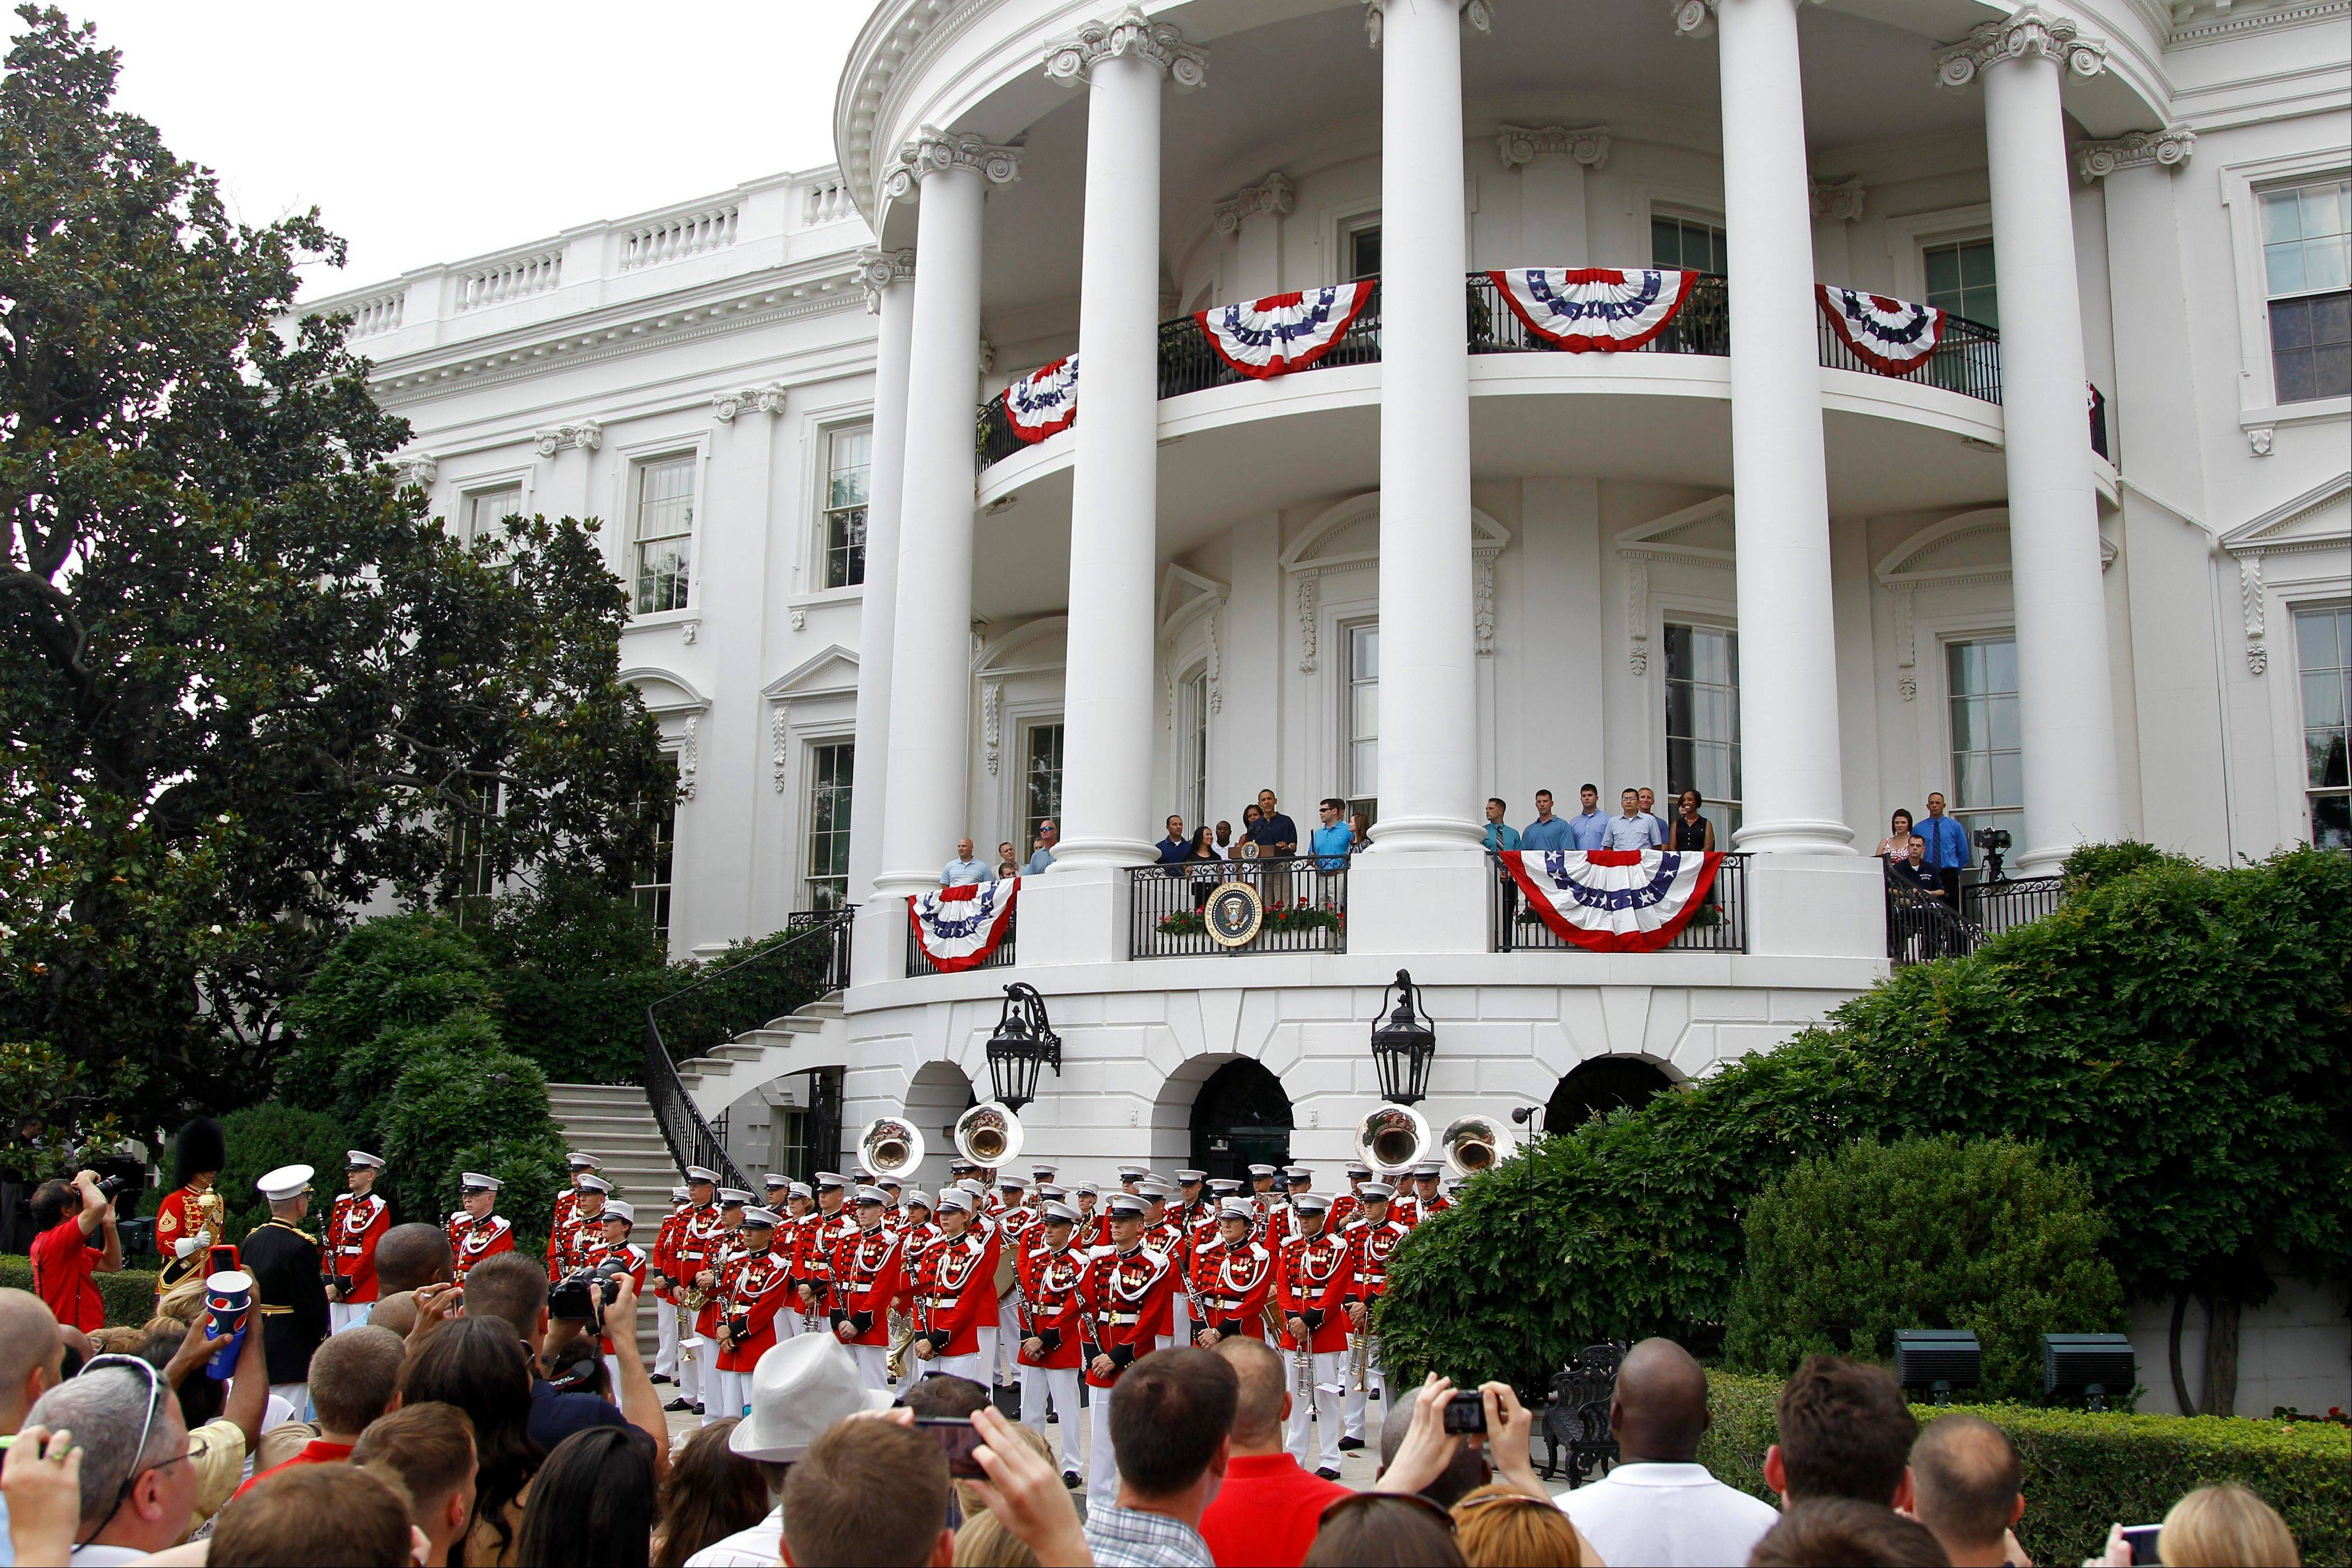 President Barack Obama speaks from the White House balcony as he and first lady Michelle Obama start an Independence Day celebration with a barbecue, concert and a view of fireworks, Wednesday, July 4, 2012, on the South Lawn of the White House in Washington.